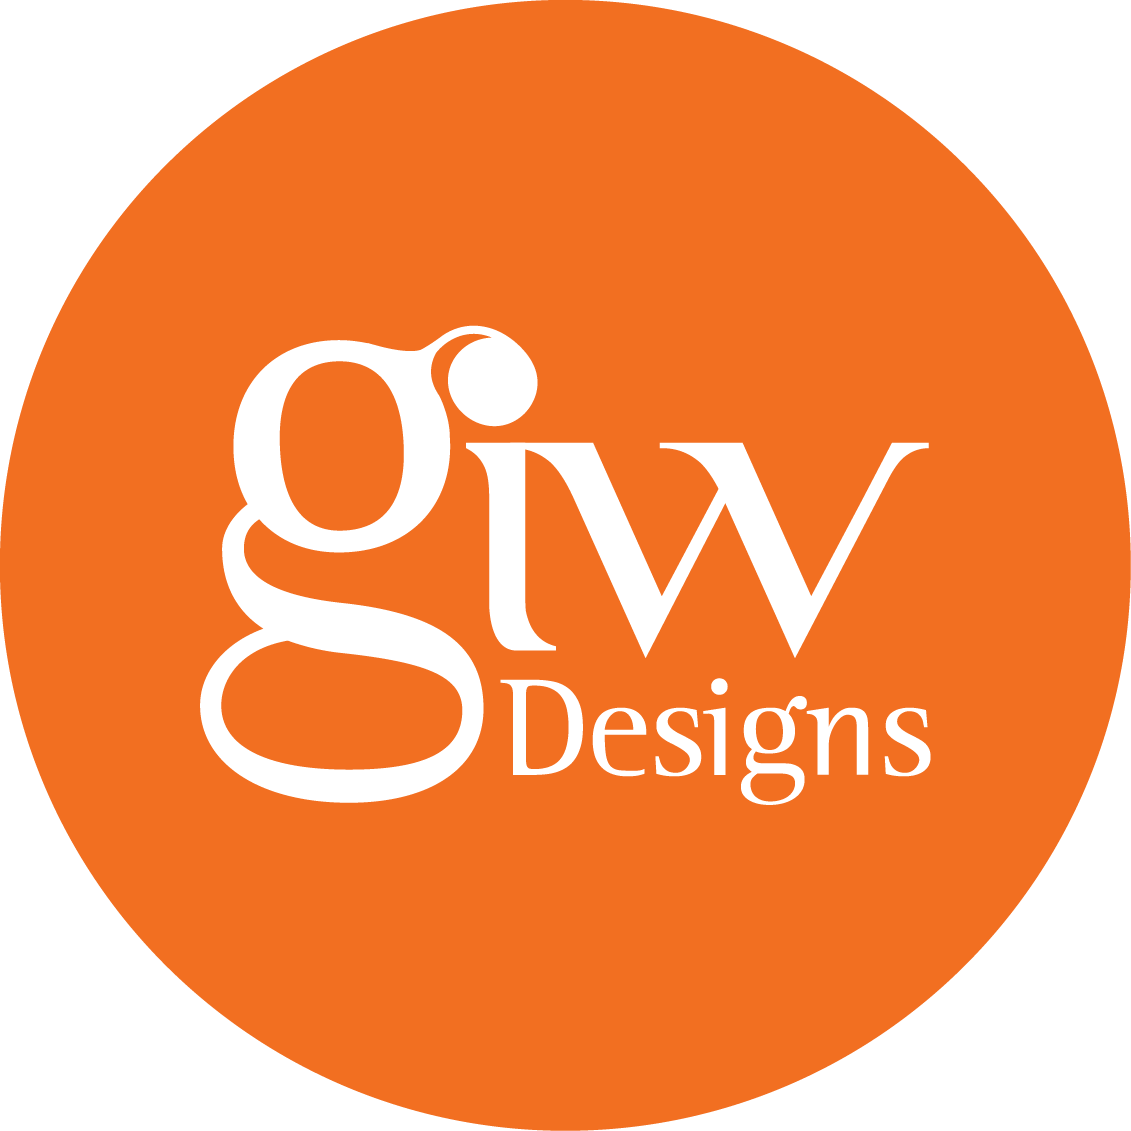 giw designs interior decor interior design gladstone